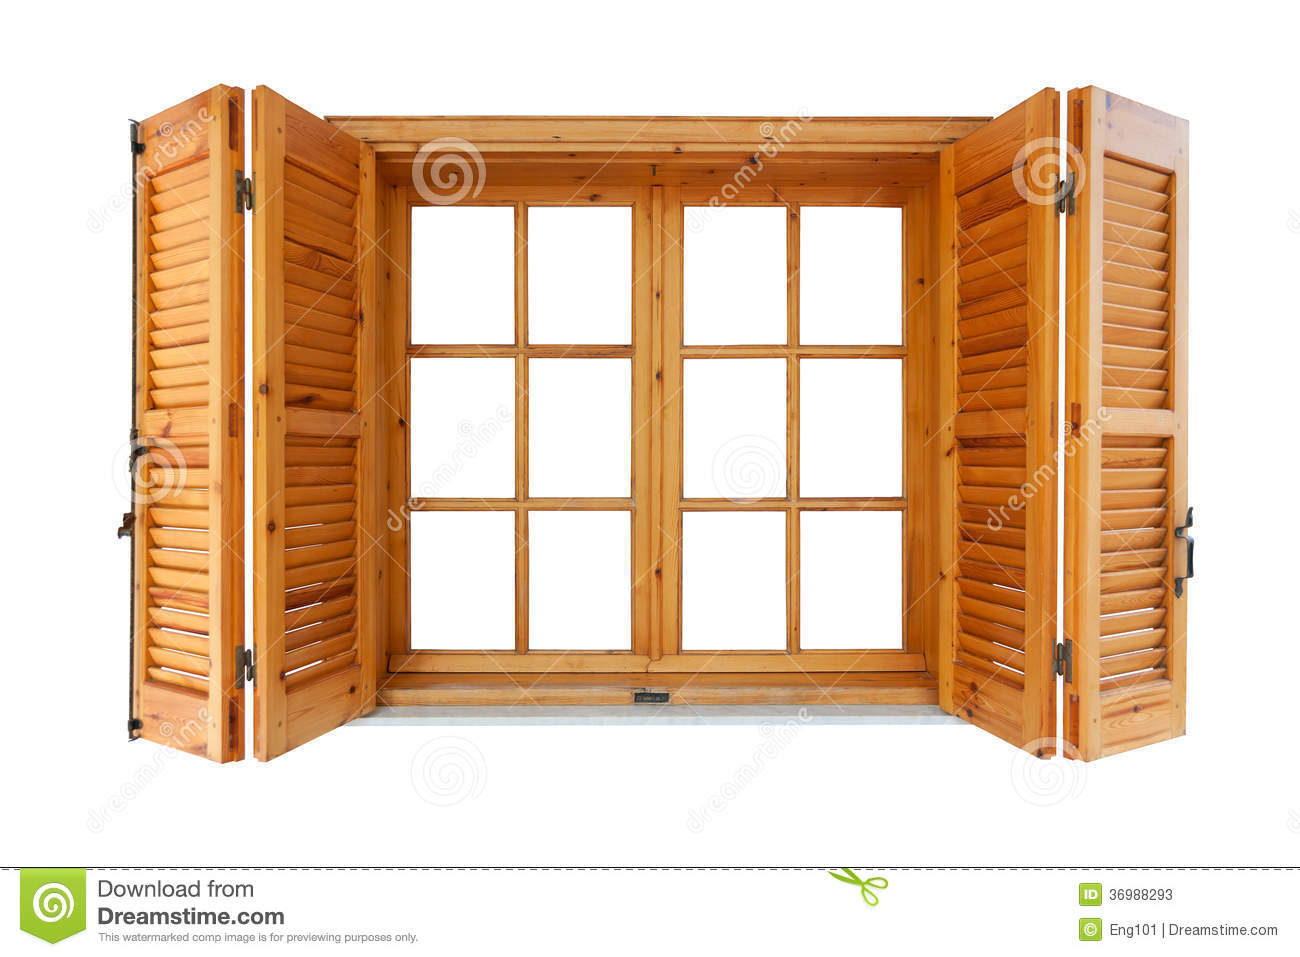 Wooden window with shutters stock image image of open - Exterior wooden shutters for windows ...